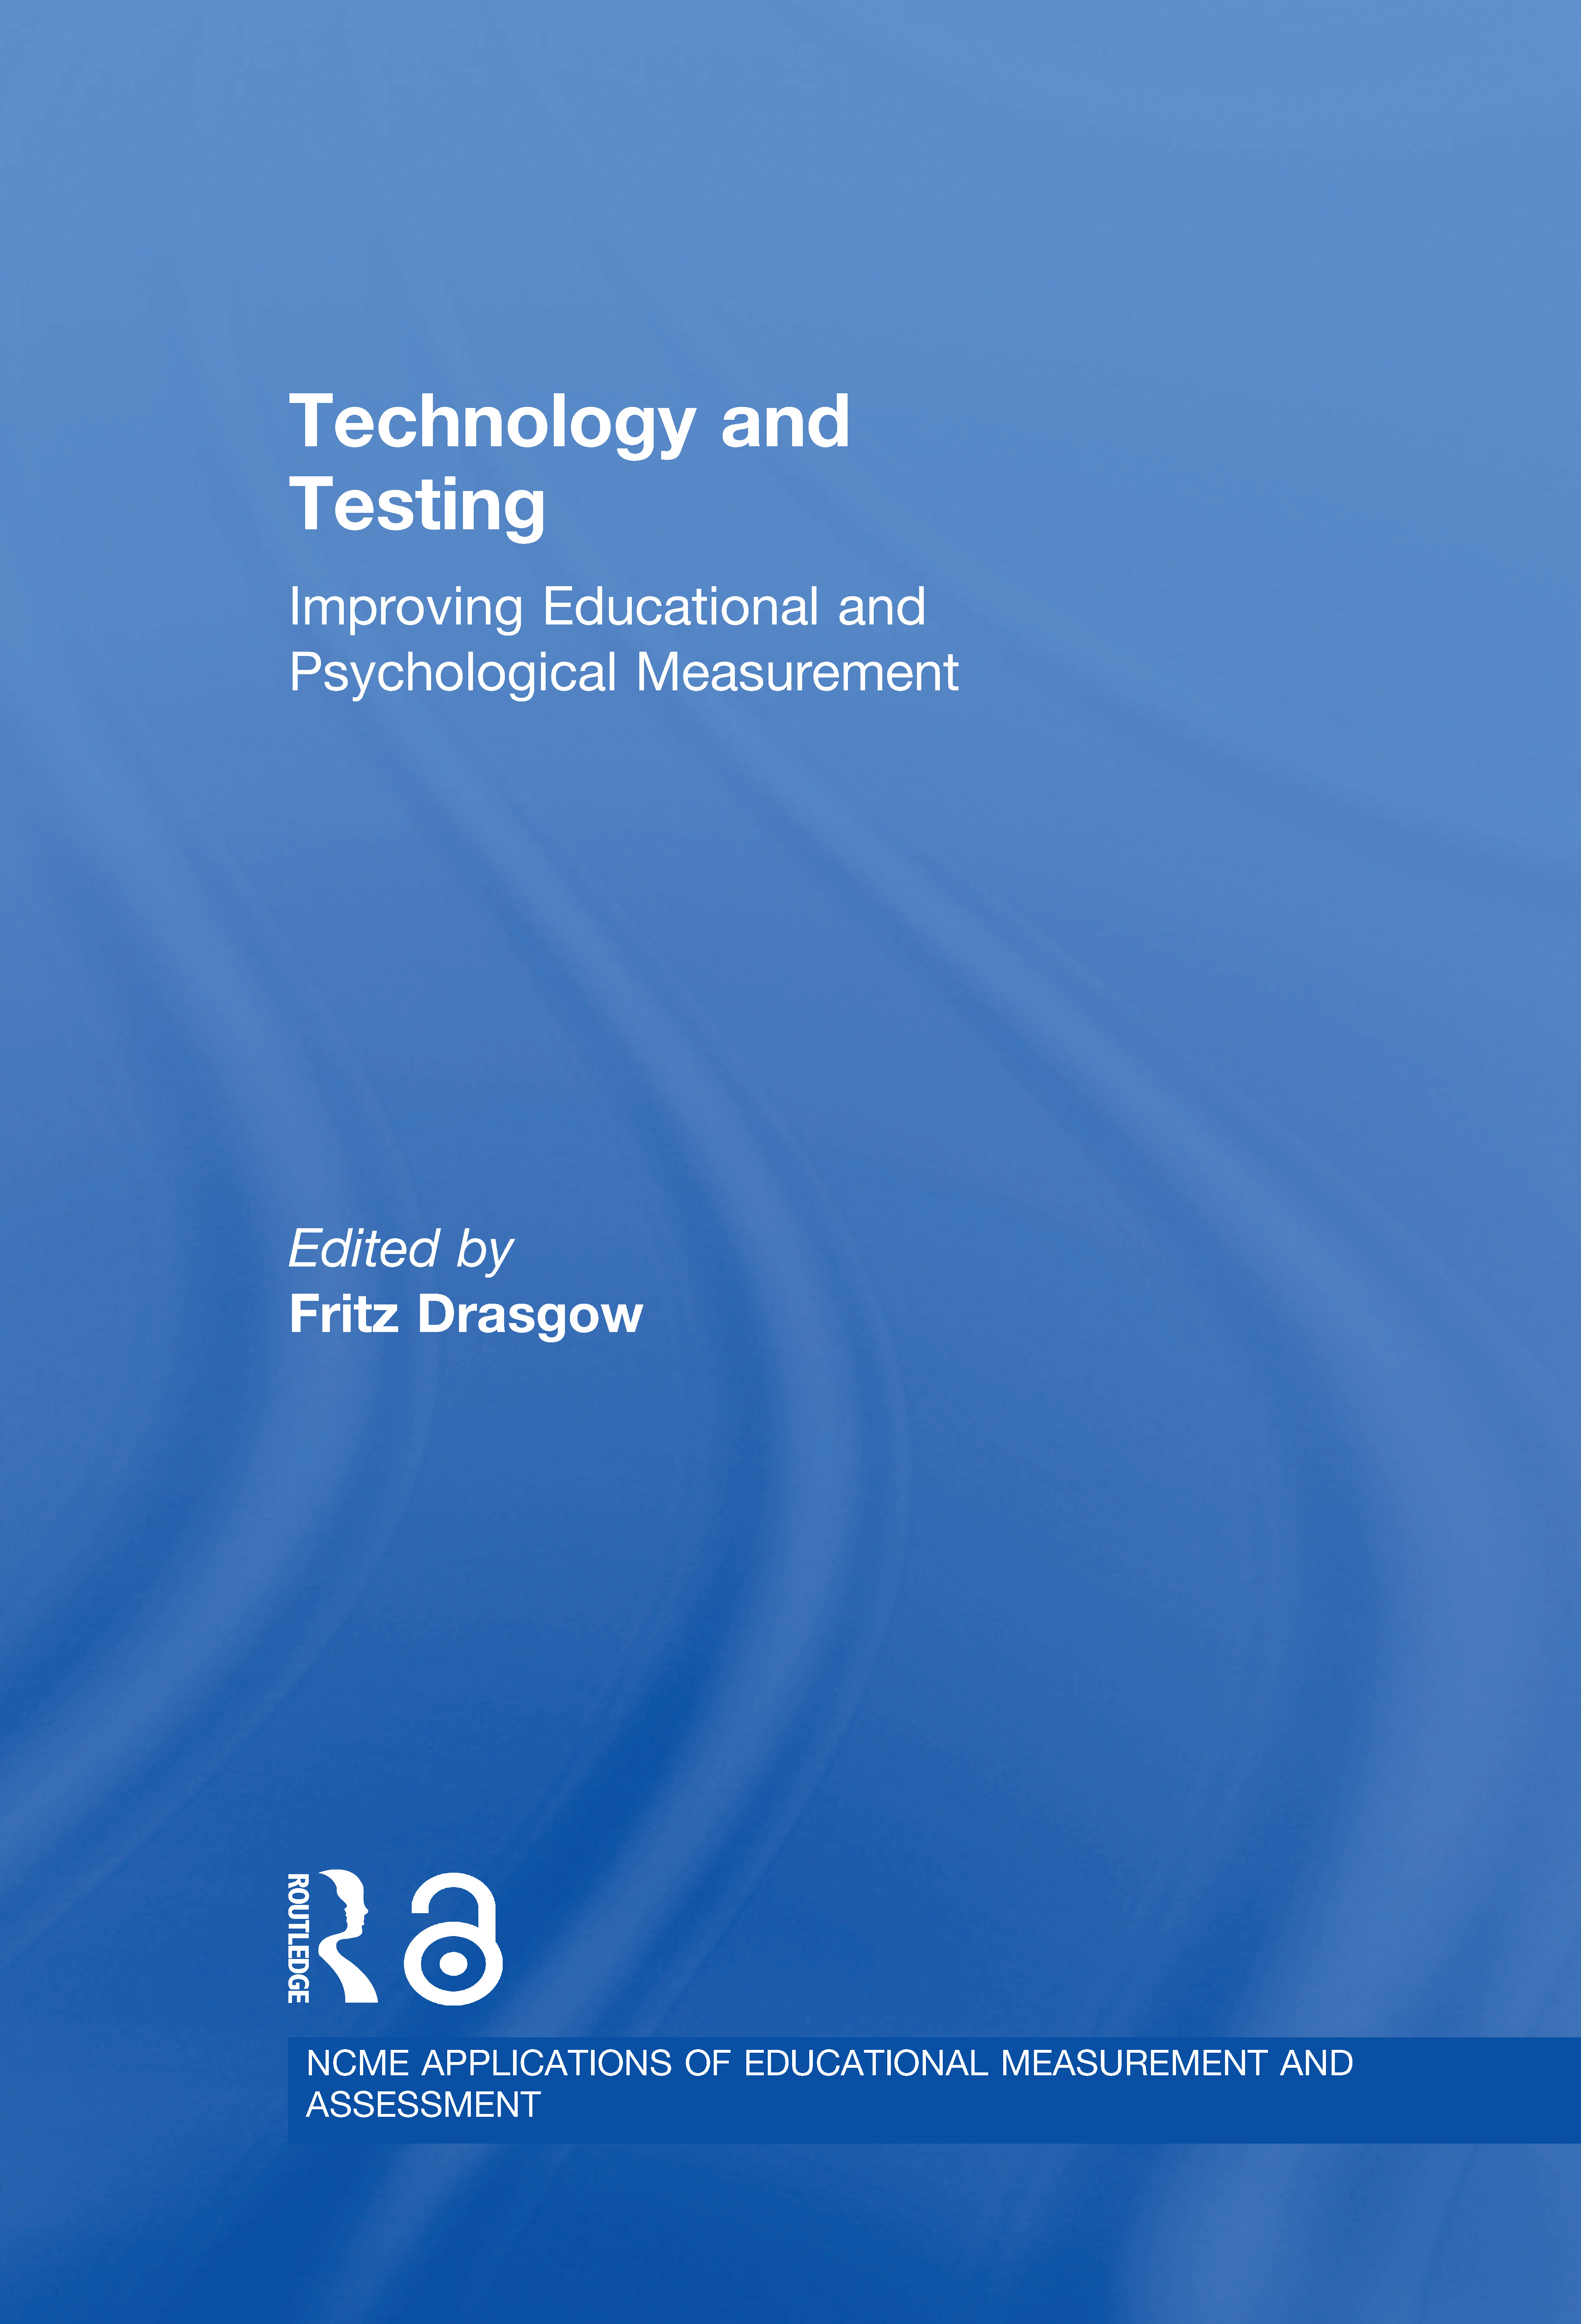 Technology and Testing: Improving Educational and Psychological Measurement book cover